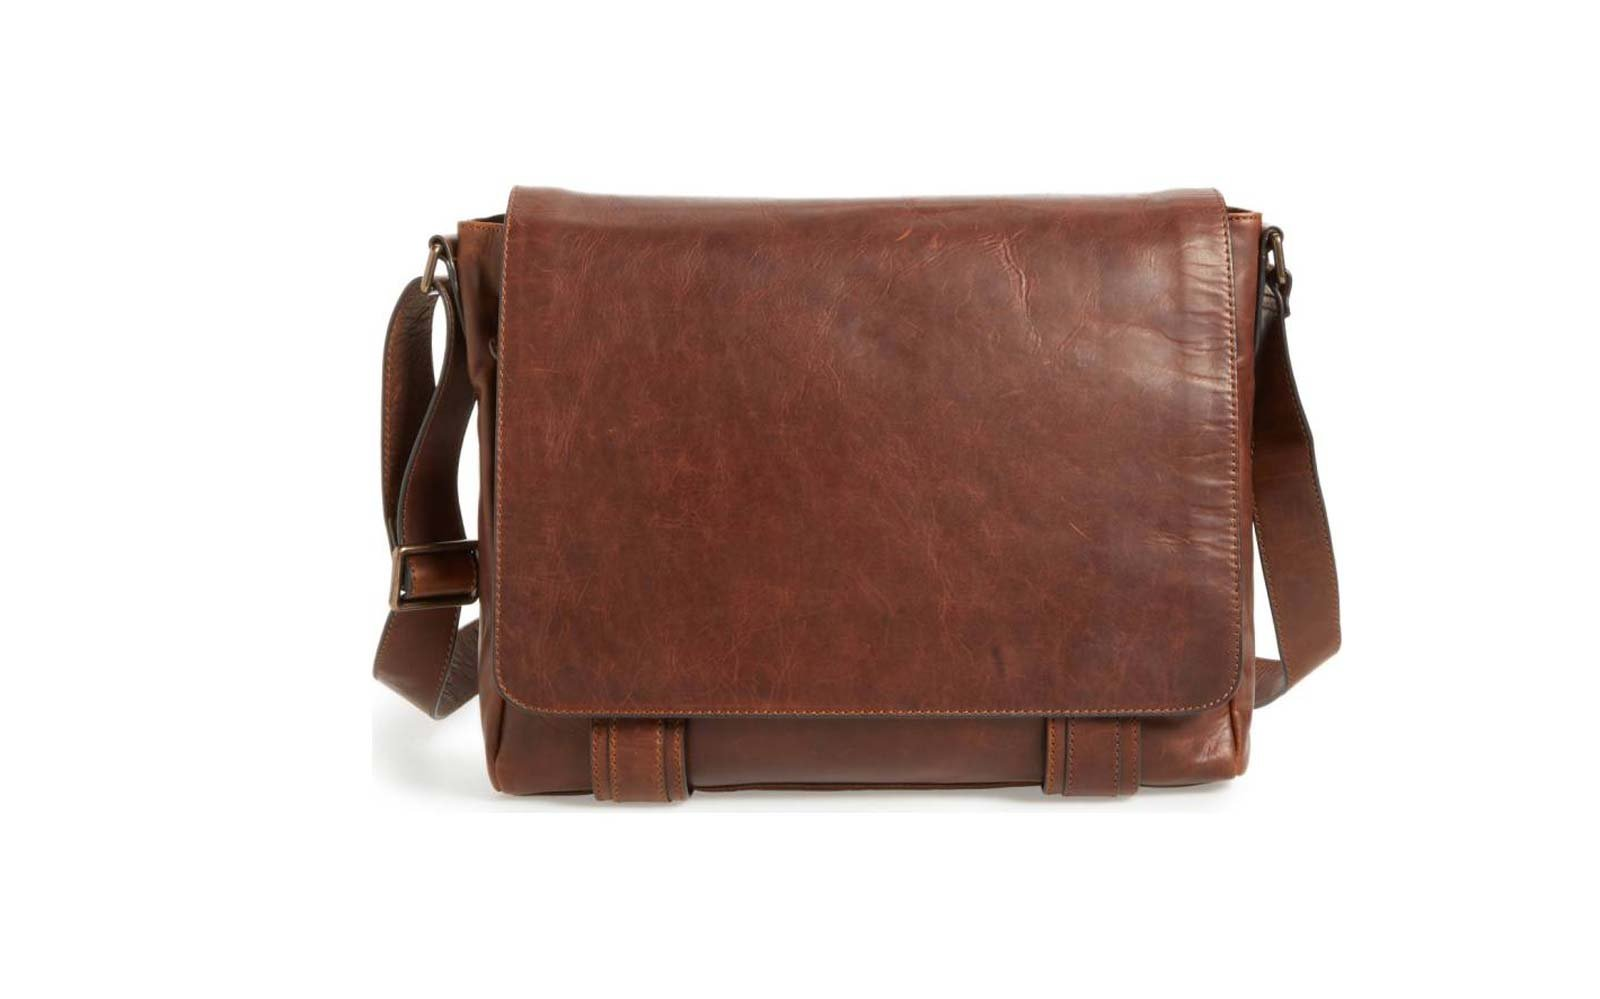 51997436586f The 9 Best Leather Messenger Bags for Men